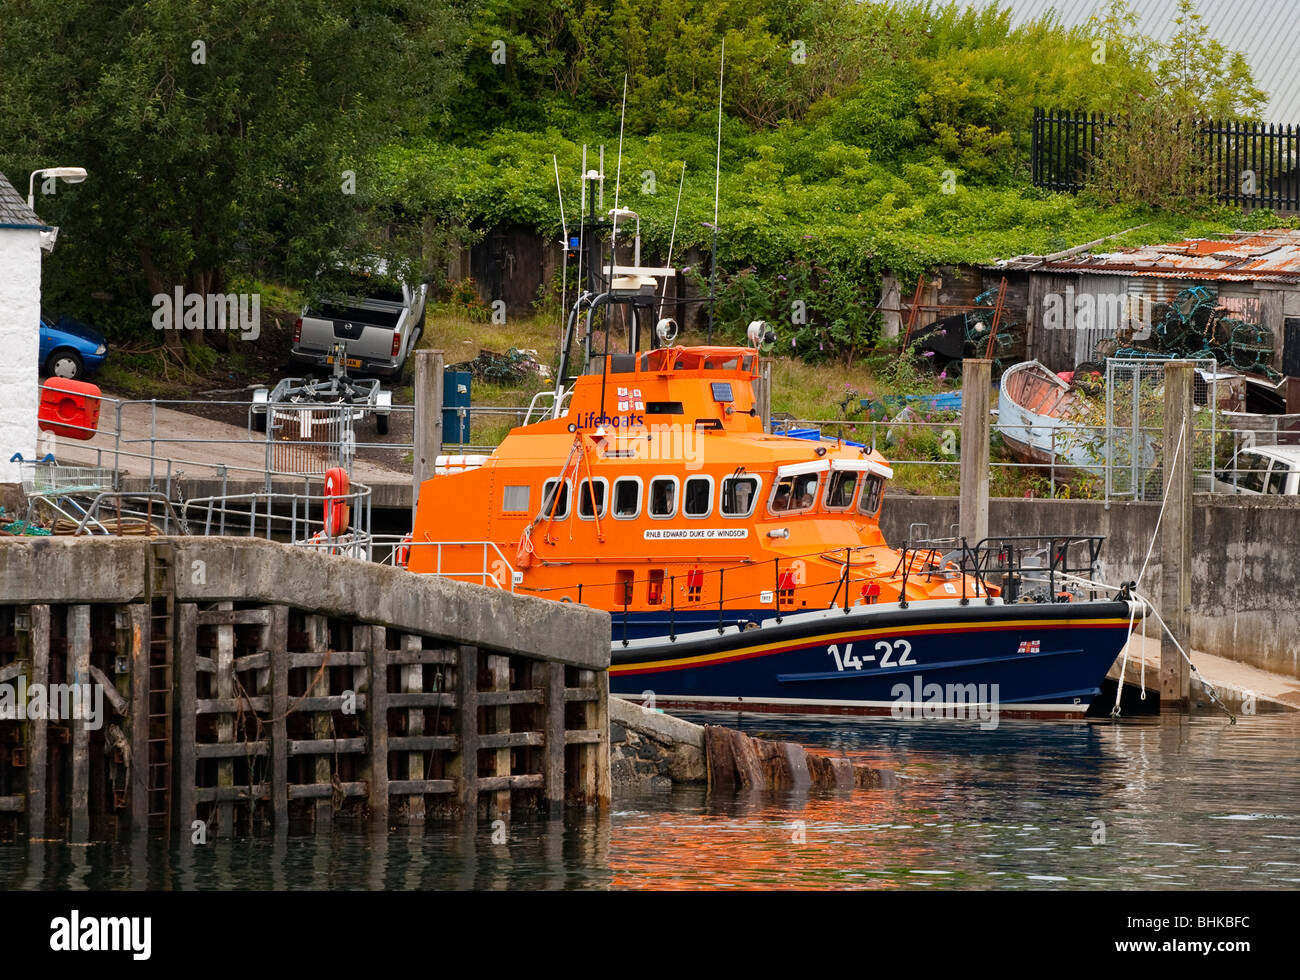 RNLI  All Weather  ALB Lifeboat Edward Duke of Windsor 14-22 moored at Oban Lifeboat Station in Argyll in western - Stock Image